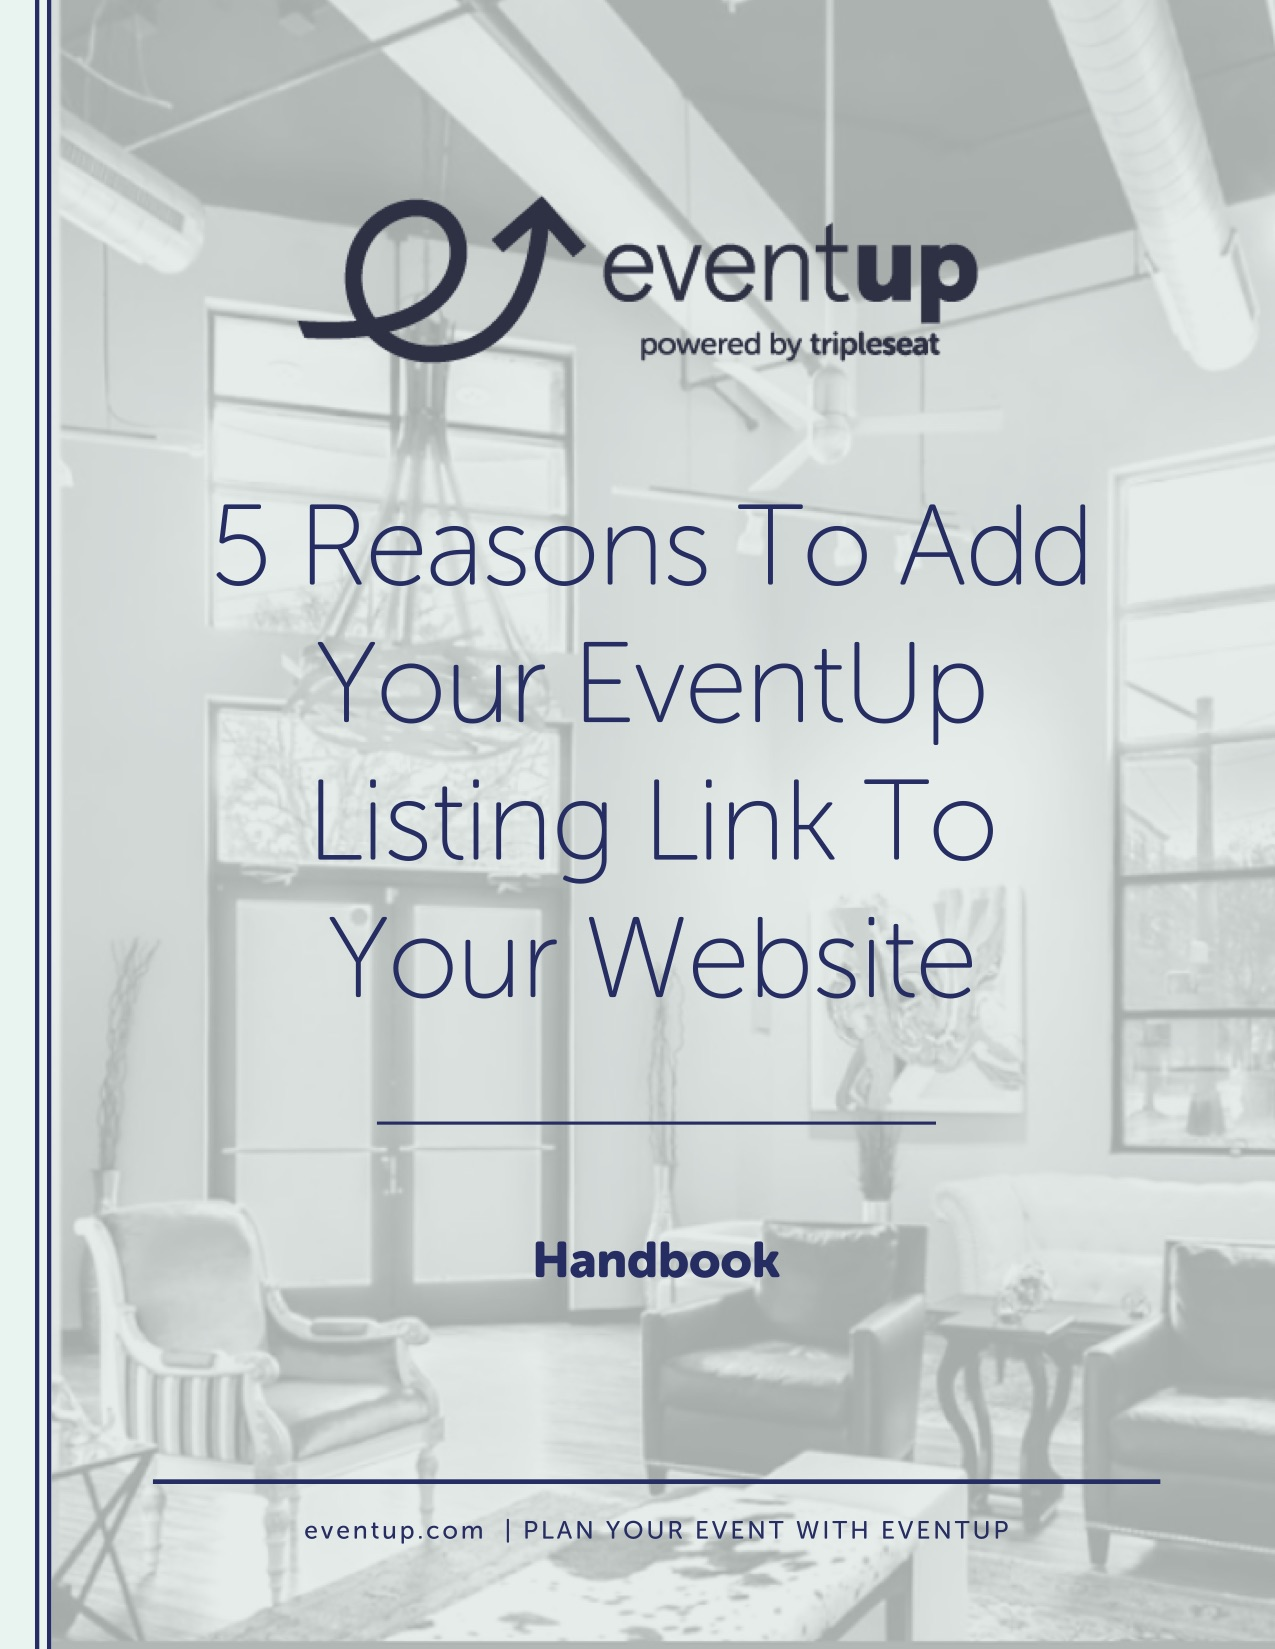 EventUp Handbook Vol 5 -  5 Reasons To Add Your EventUp Listing Link To Your Website